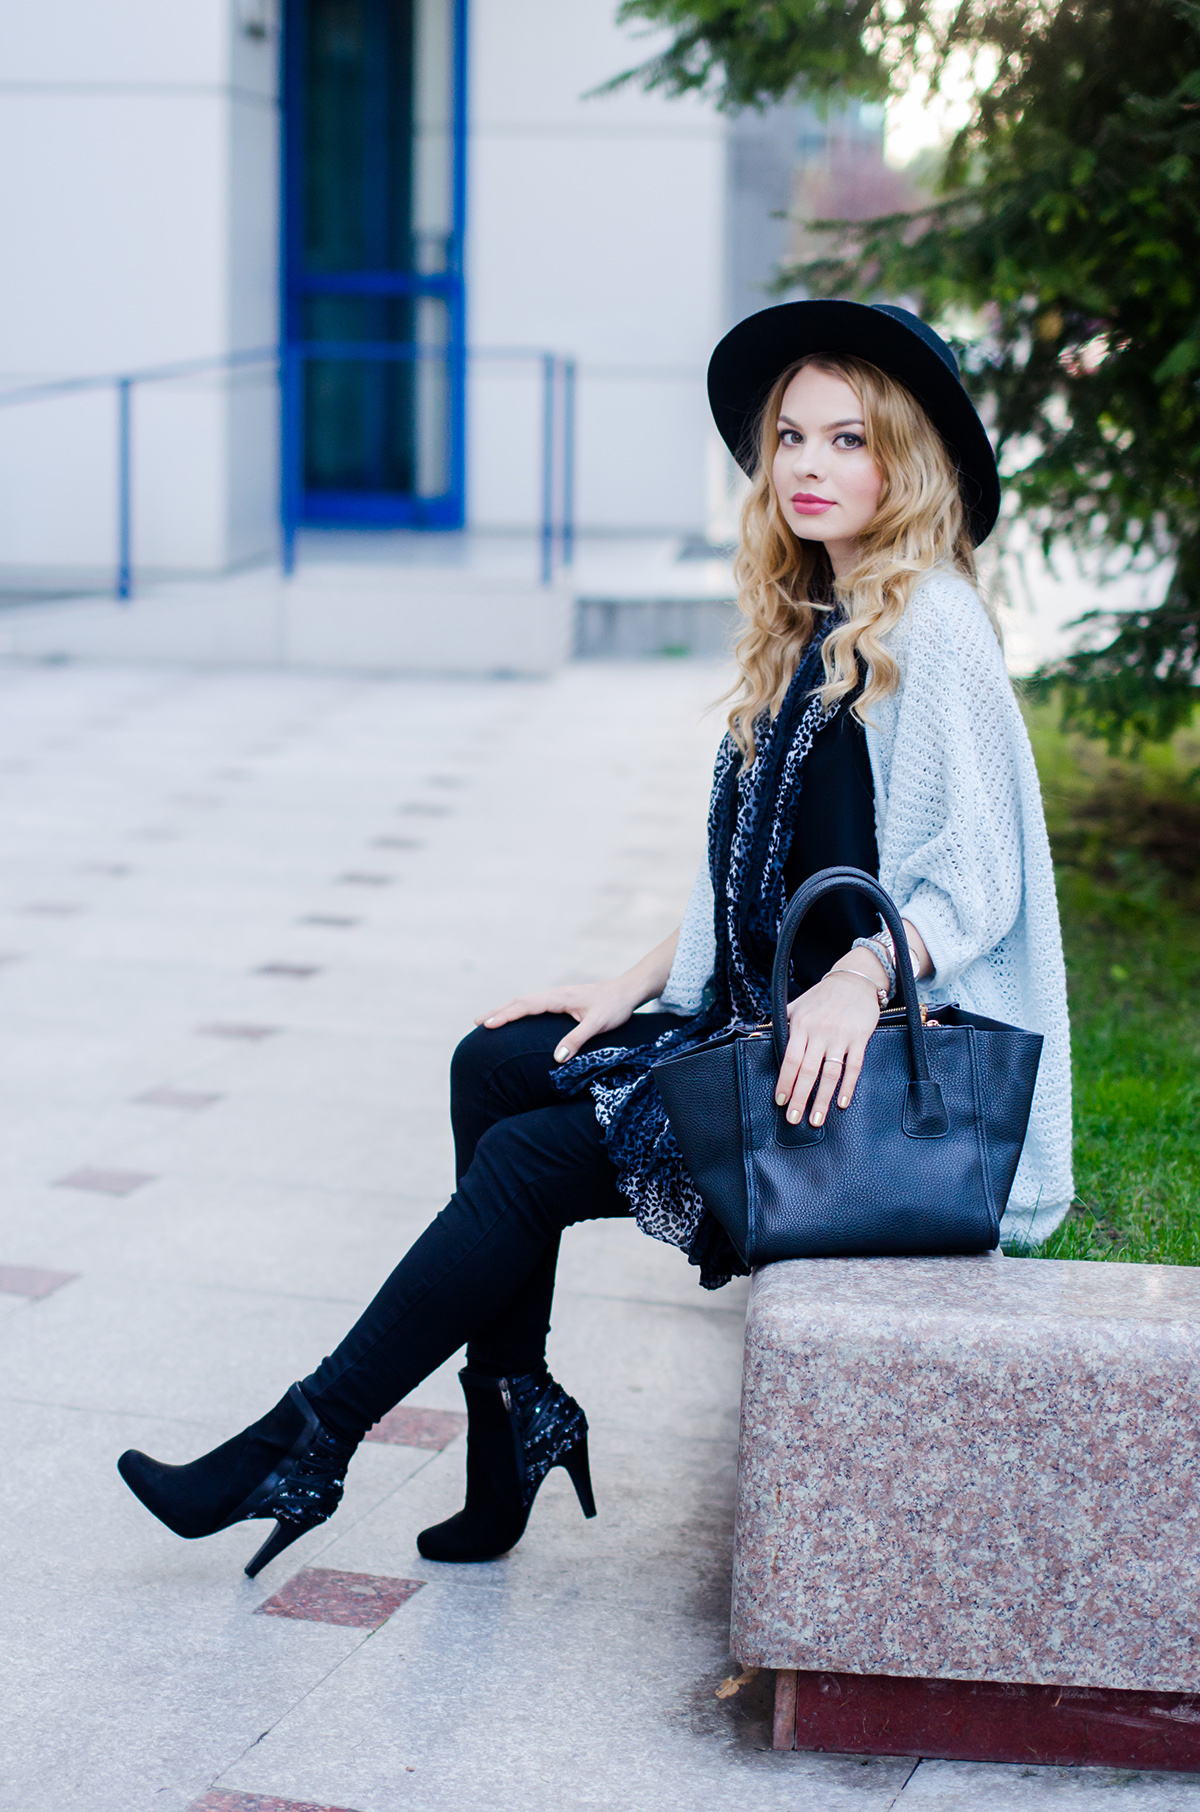 vero-moda-blue-fluffy-cardigan-black-outfit-hat-curls (11)